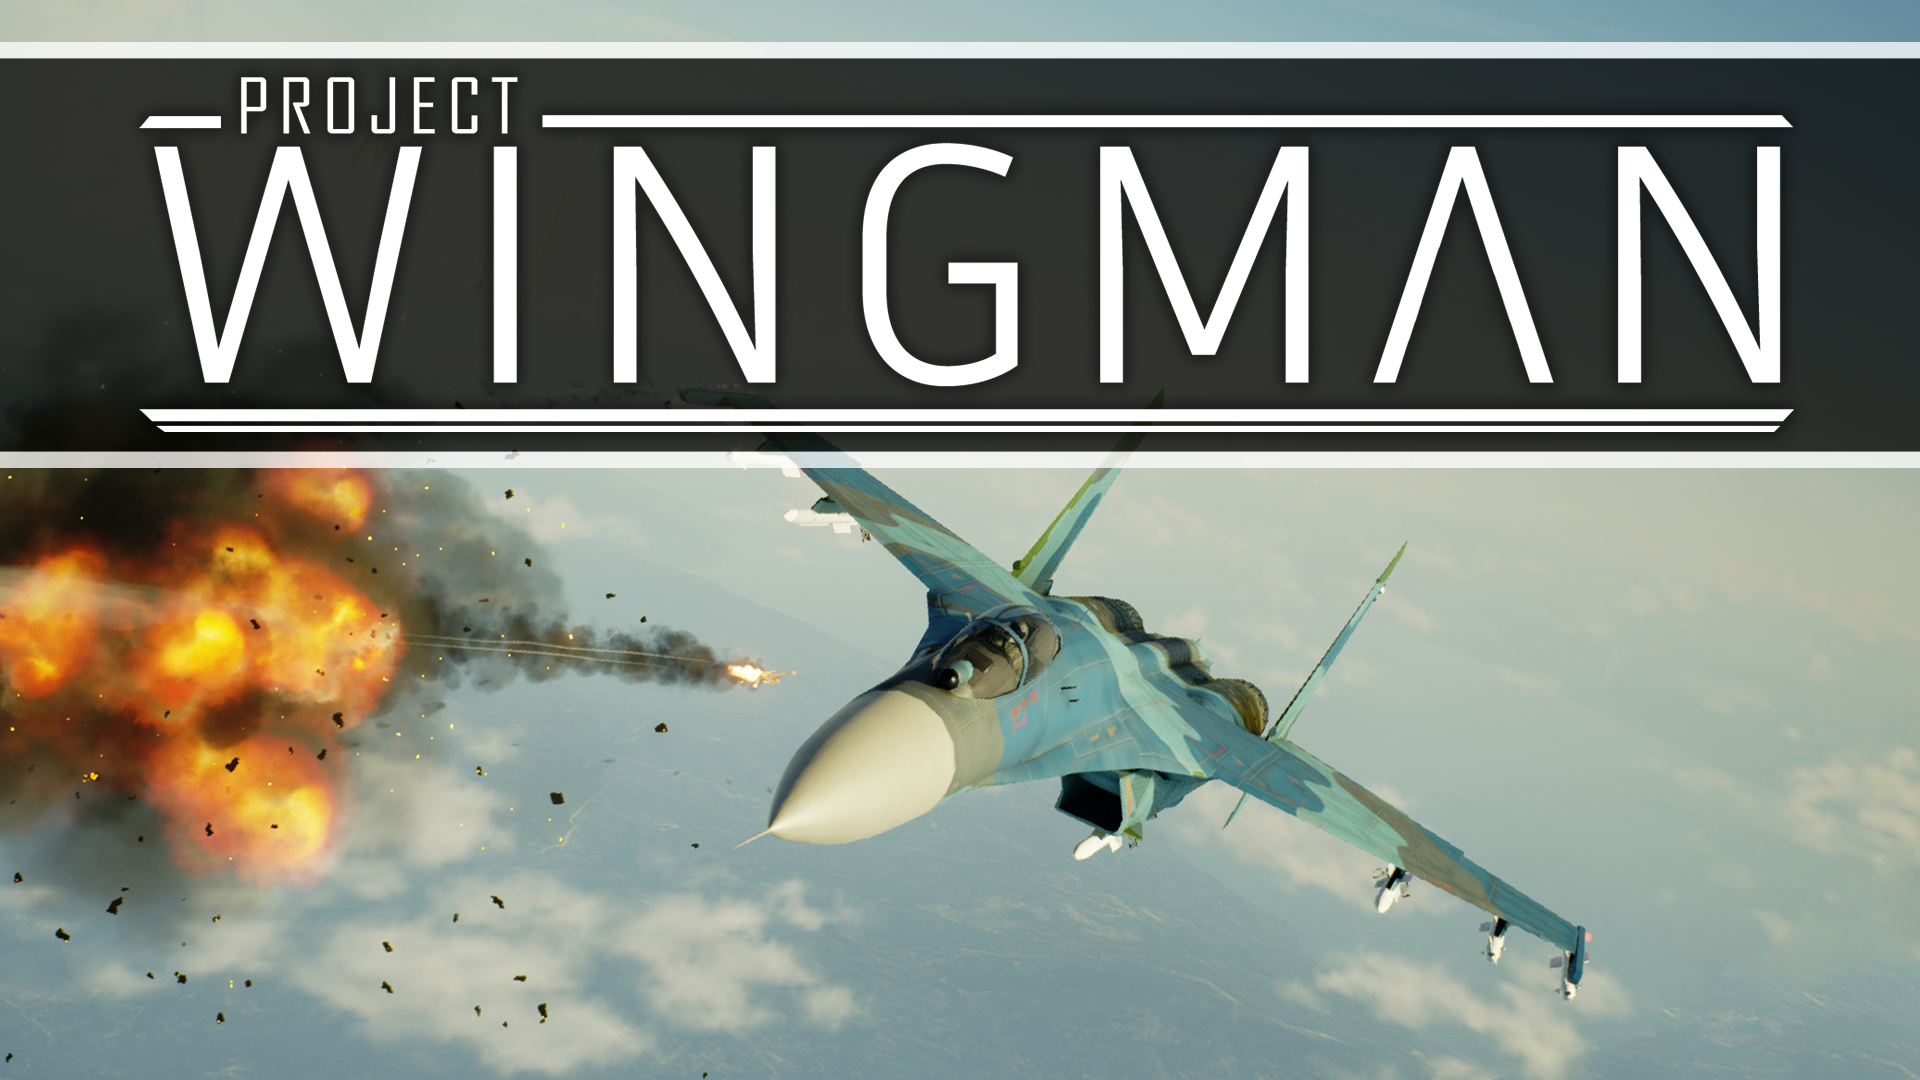 Project Wingman simulation pc game 2020